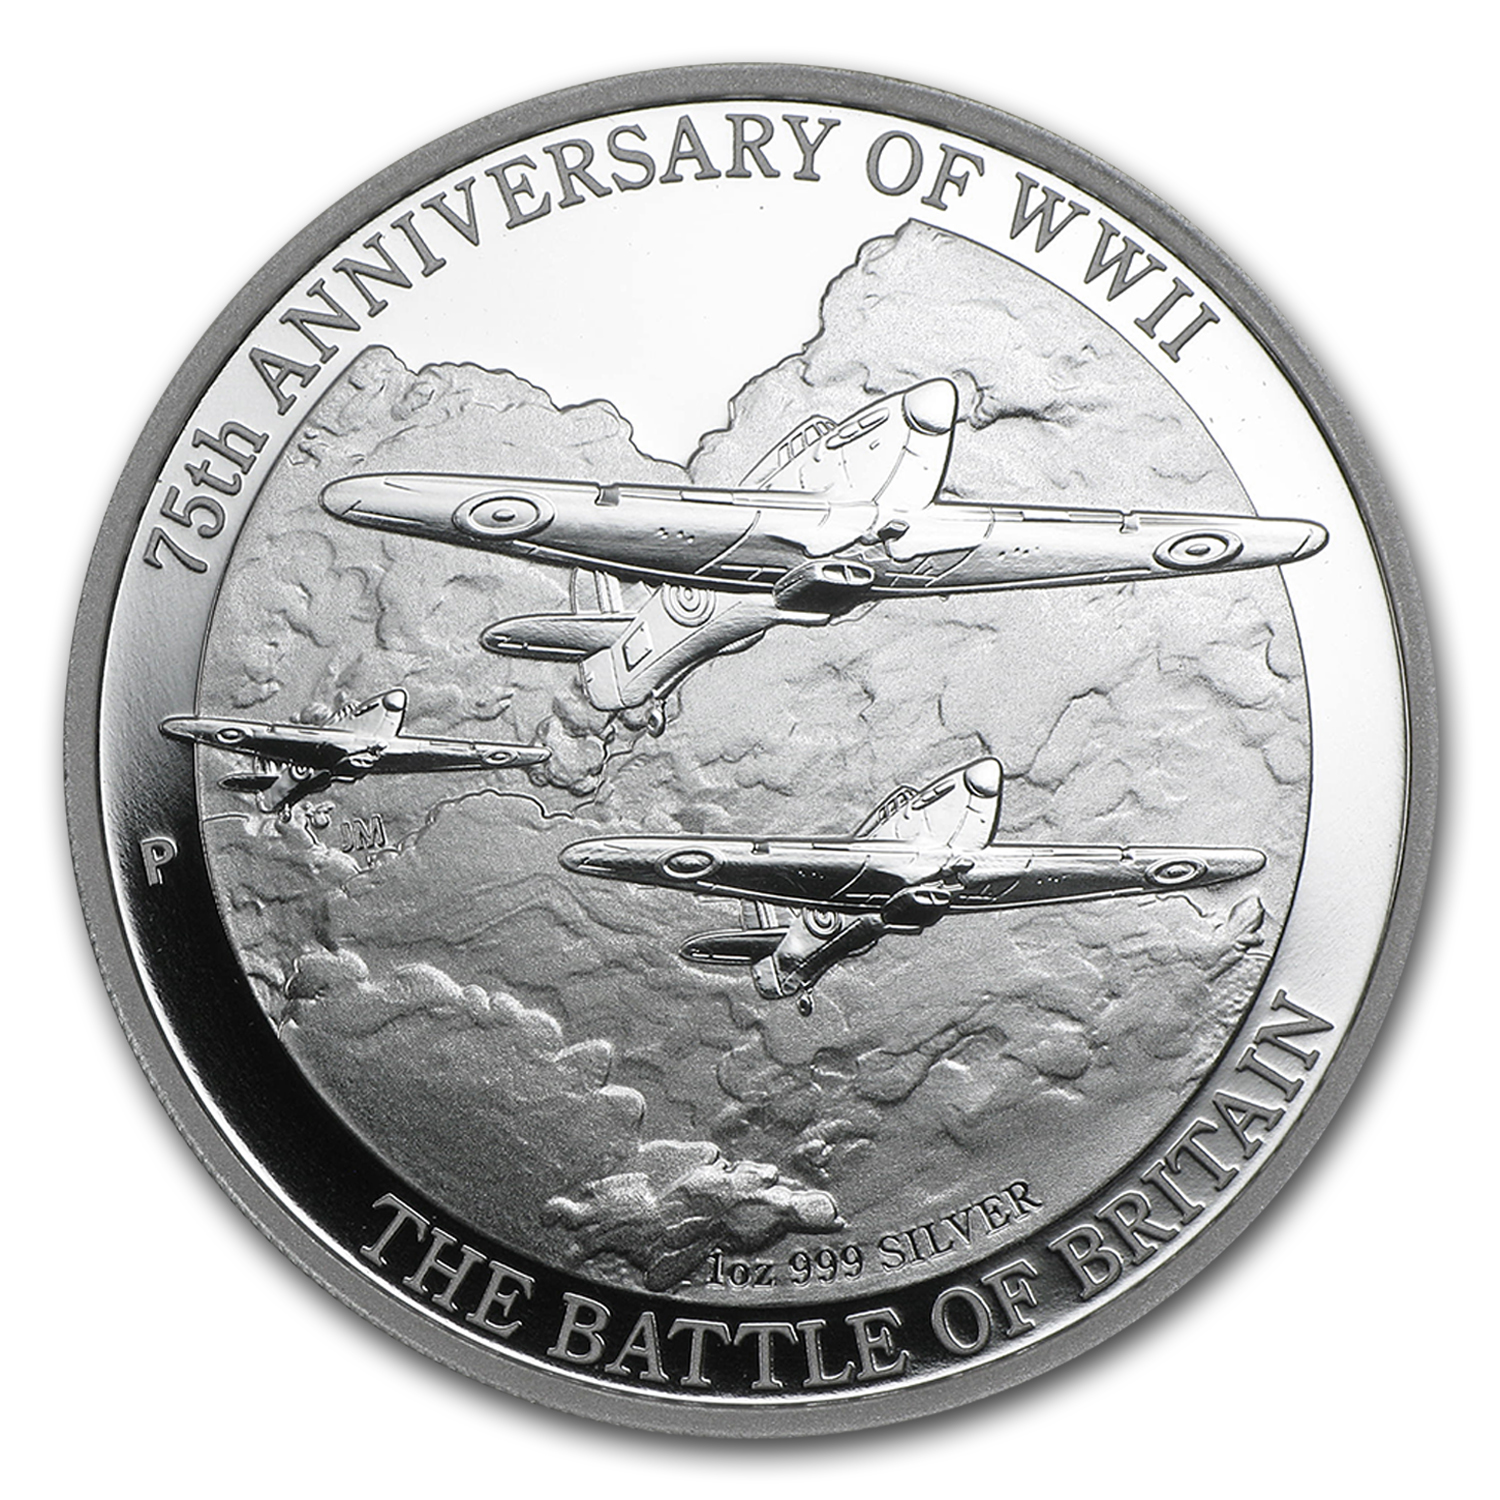 2015 AUS 1 oz Silver 75th Anniv of WWII Battle of Britain Proof